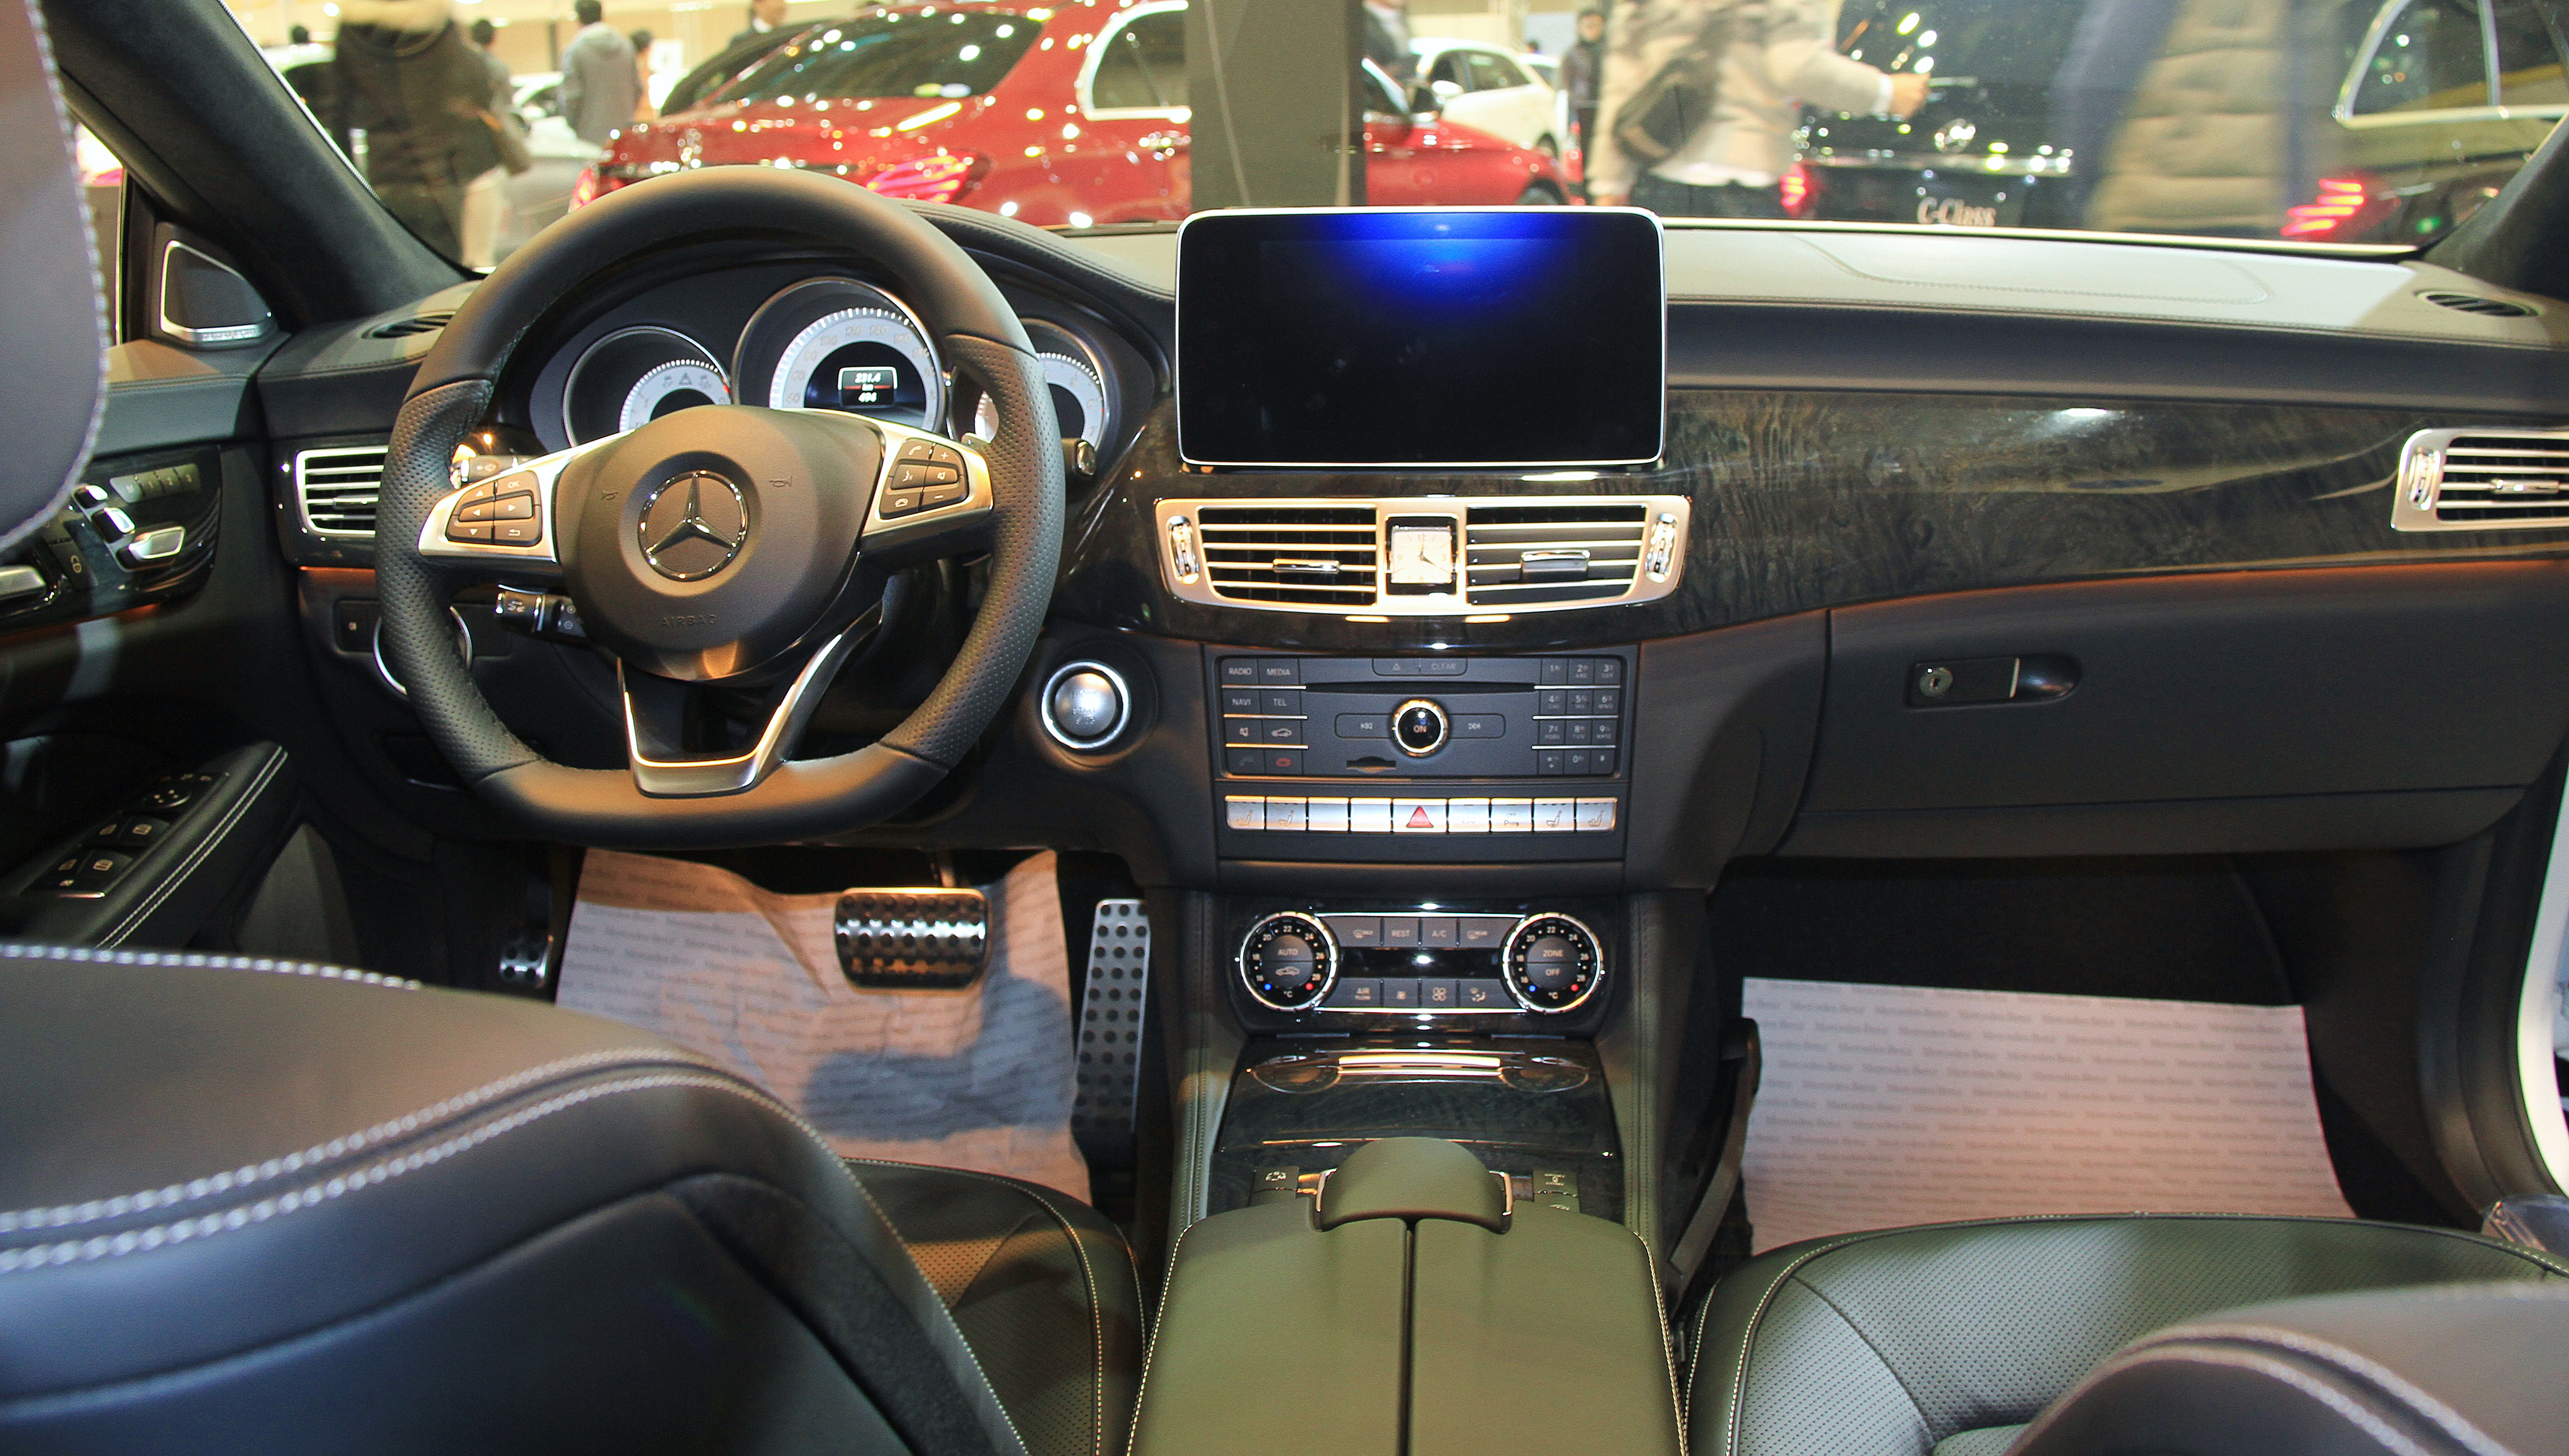 Datei2015 Mercedes Benz CLS550 Interior